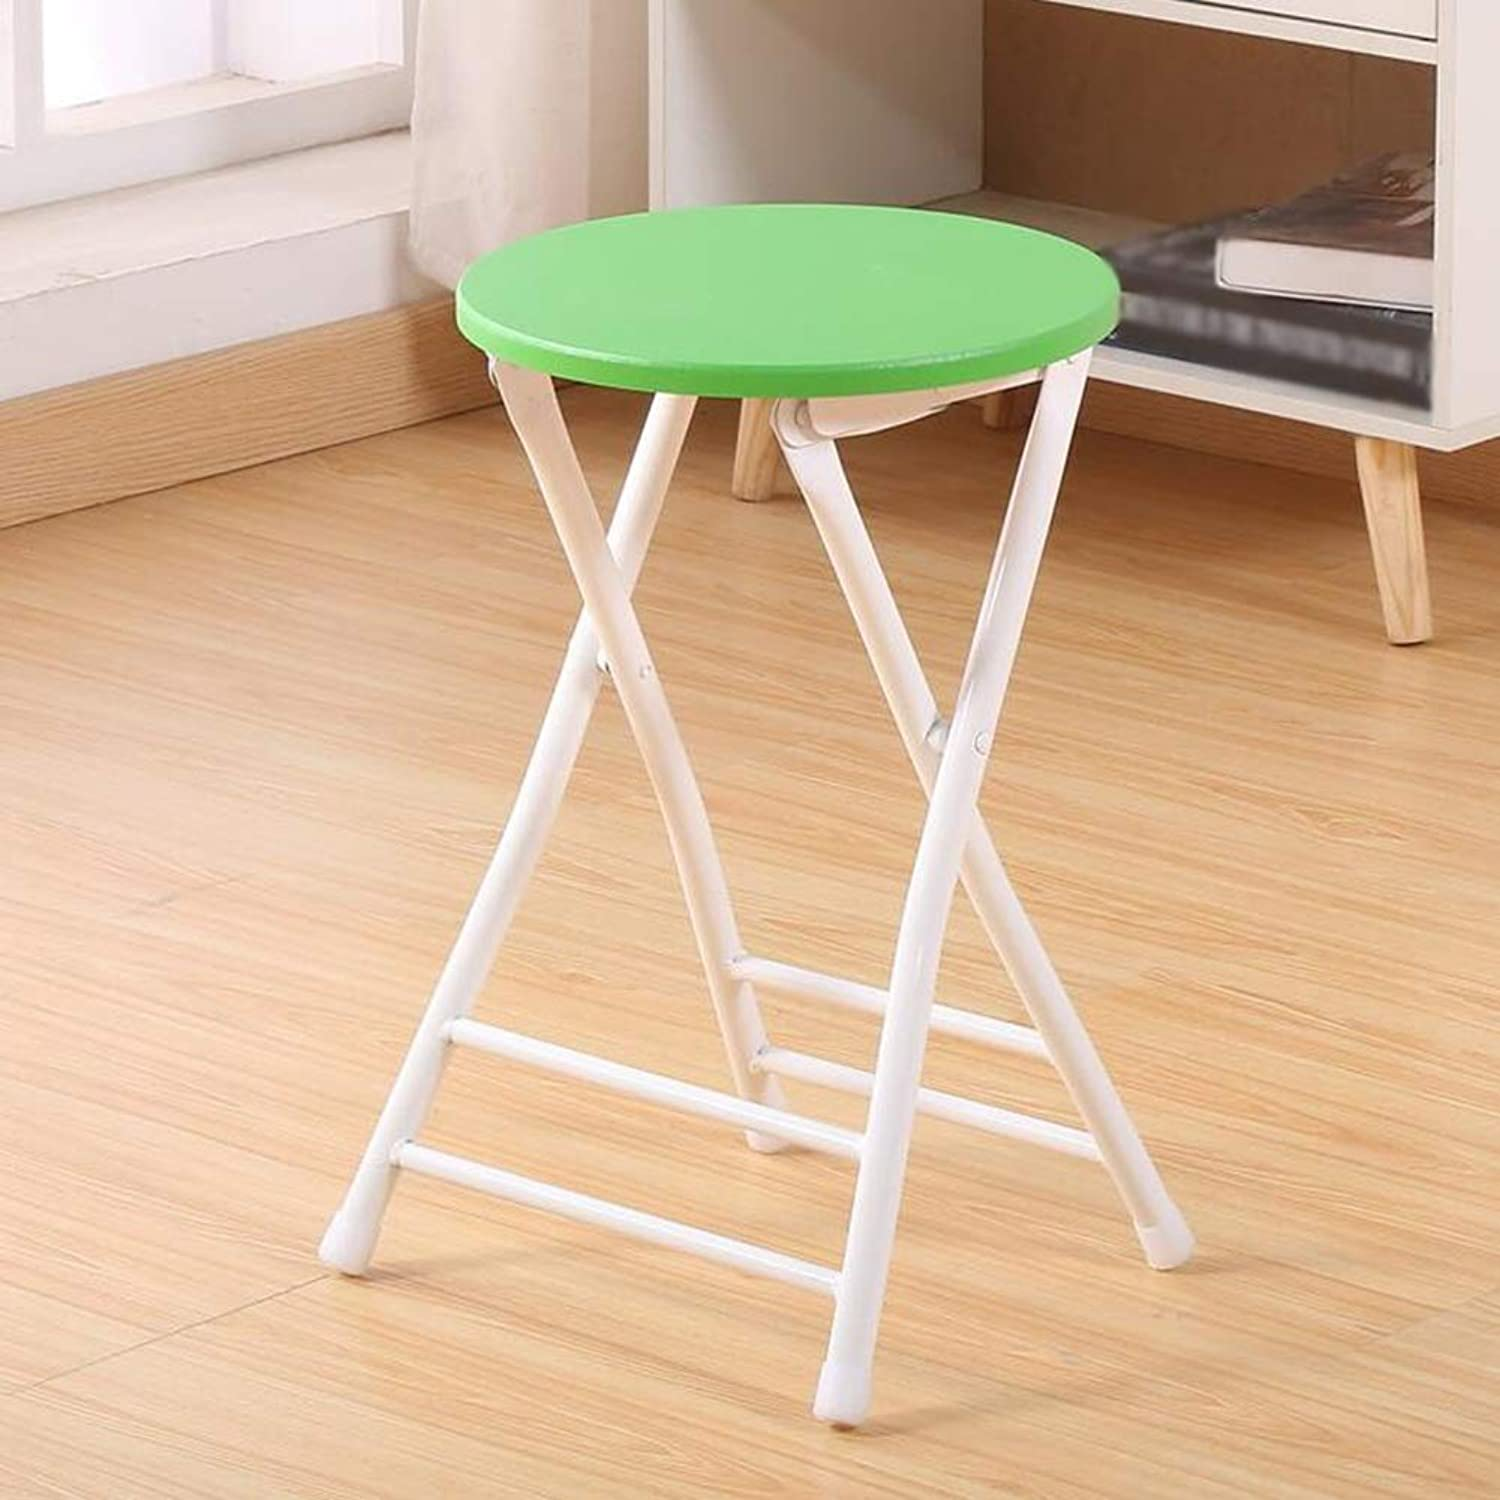 Dining Chairs Seat Chair Fold Portable Household Stool Backrest Training Student Dorm Room Simple Computer Stool ZHANGQIANG (color   A-Green)